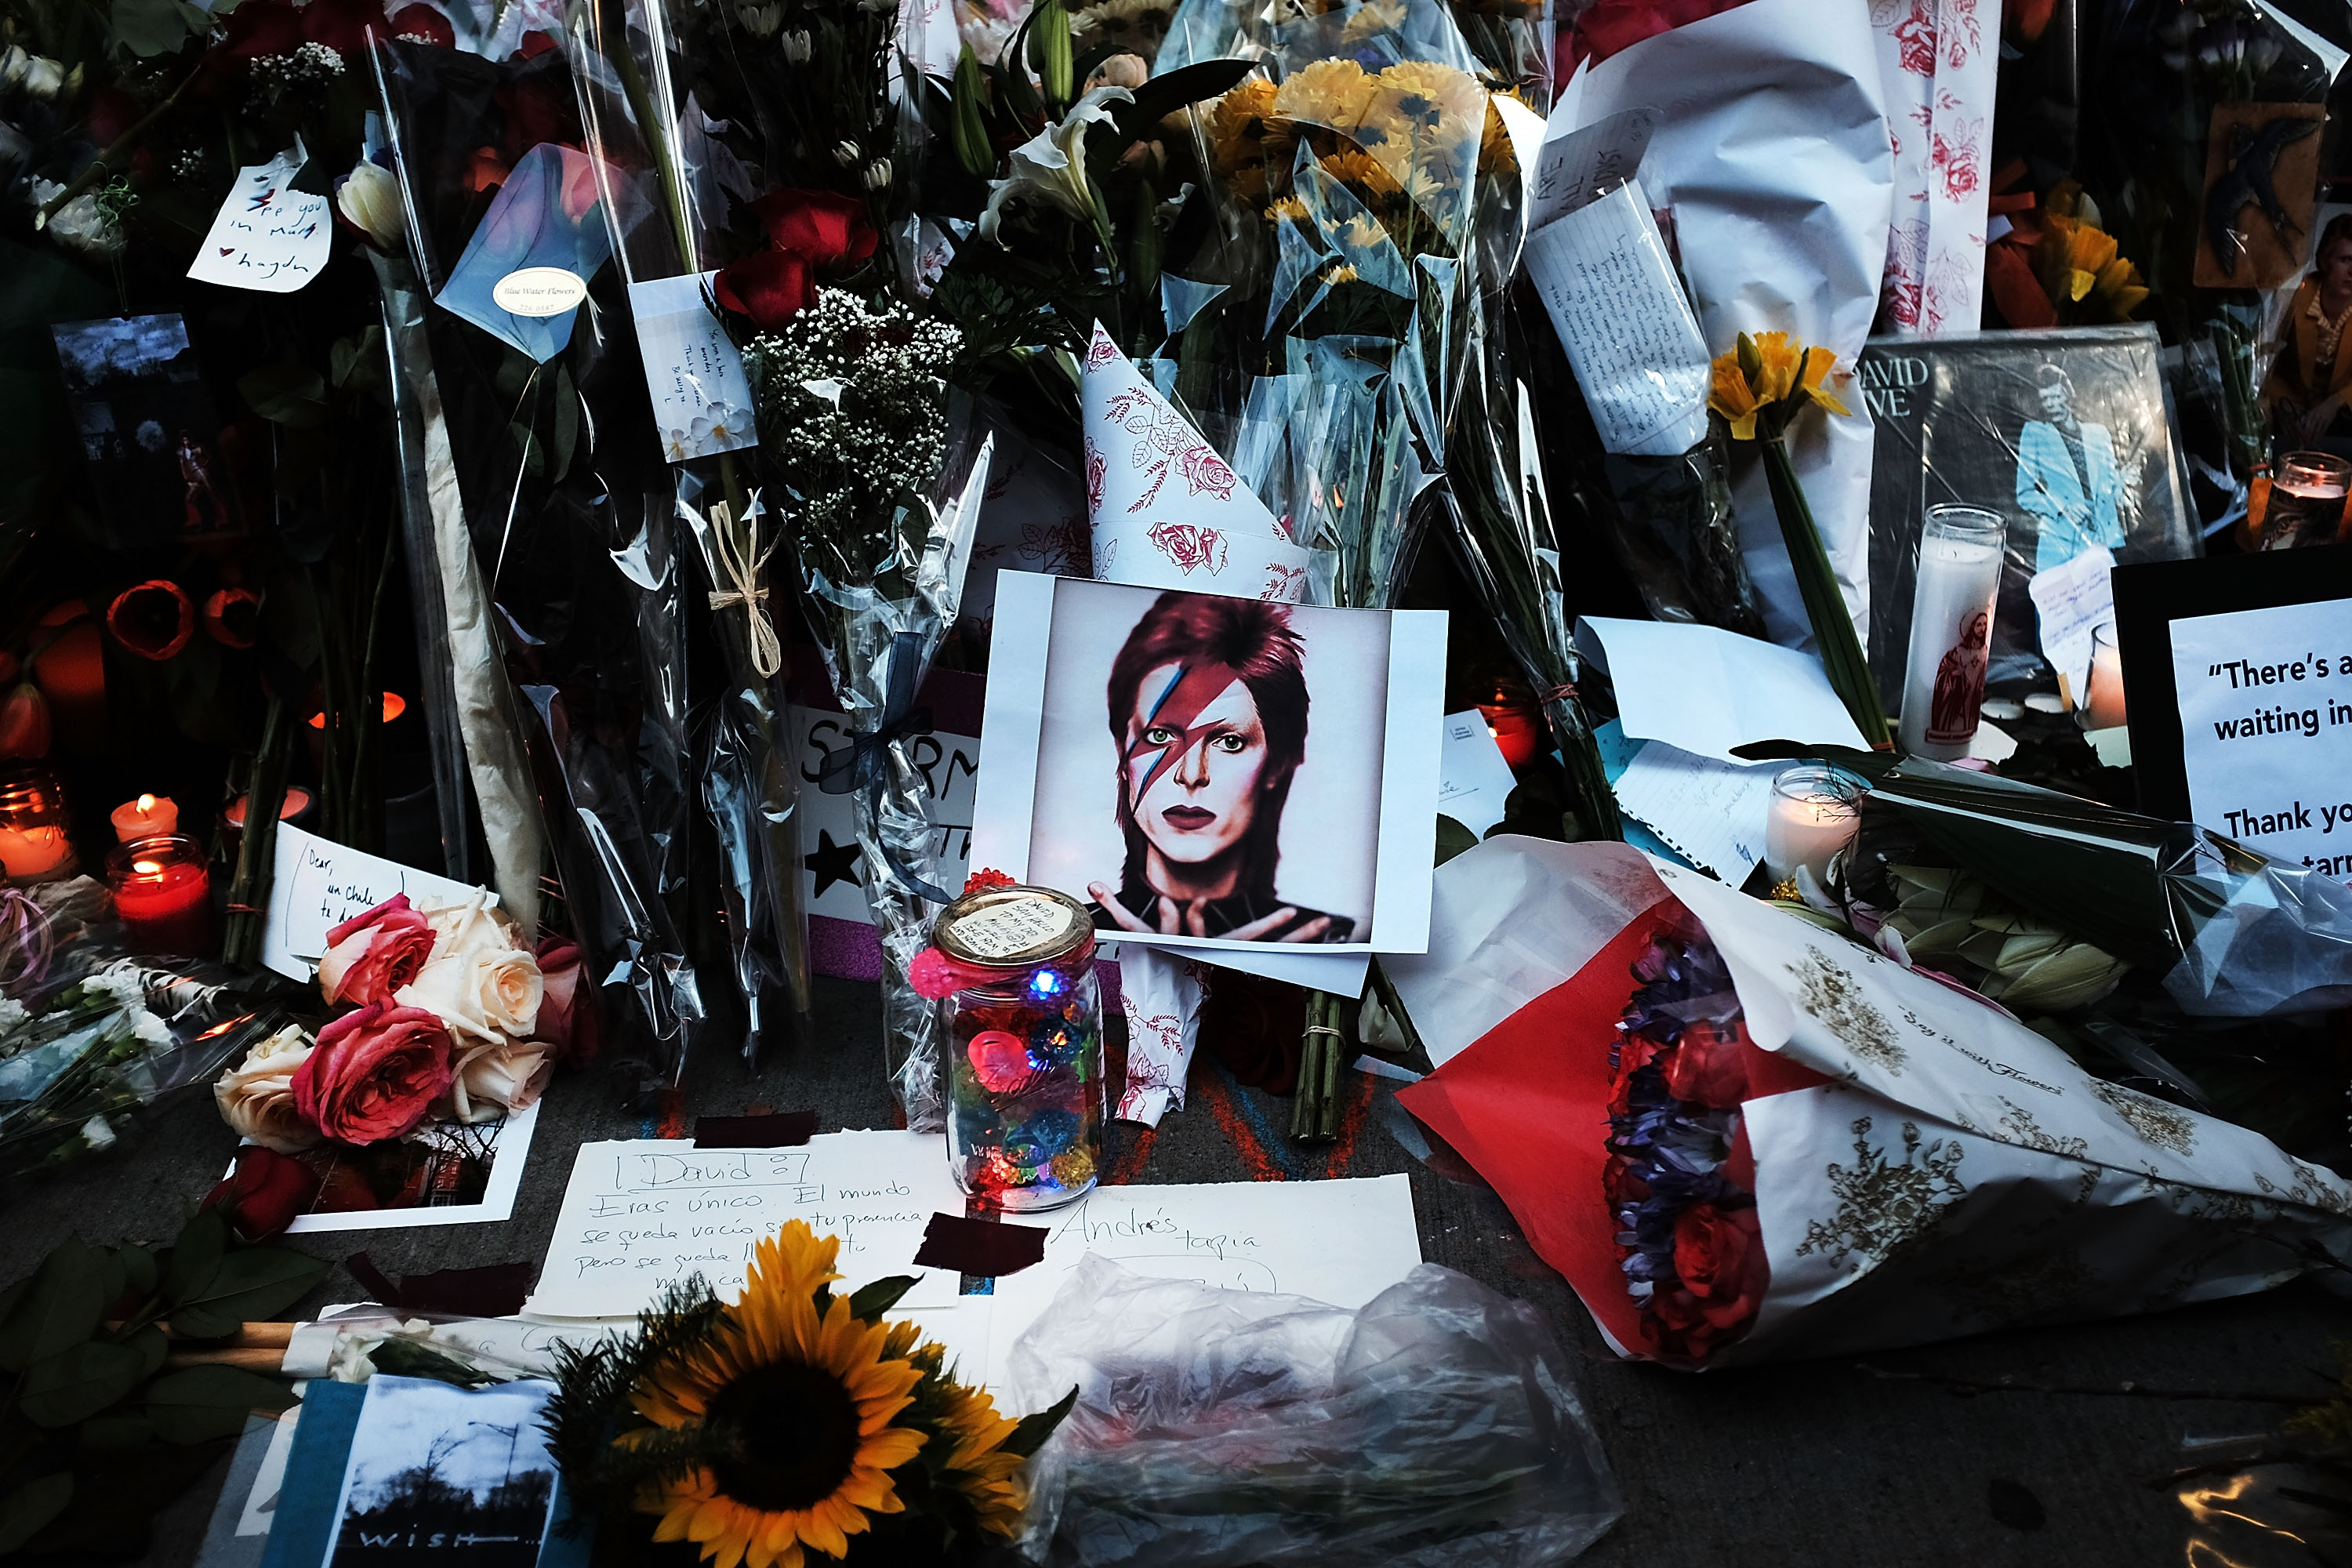 Flowers, candles and pictures sit at a memorial in New York City (Photo: Spencer Platt/Getty Images)